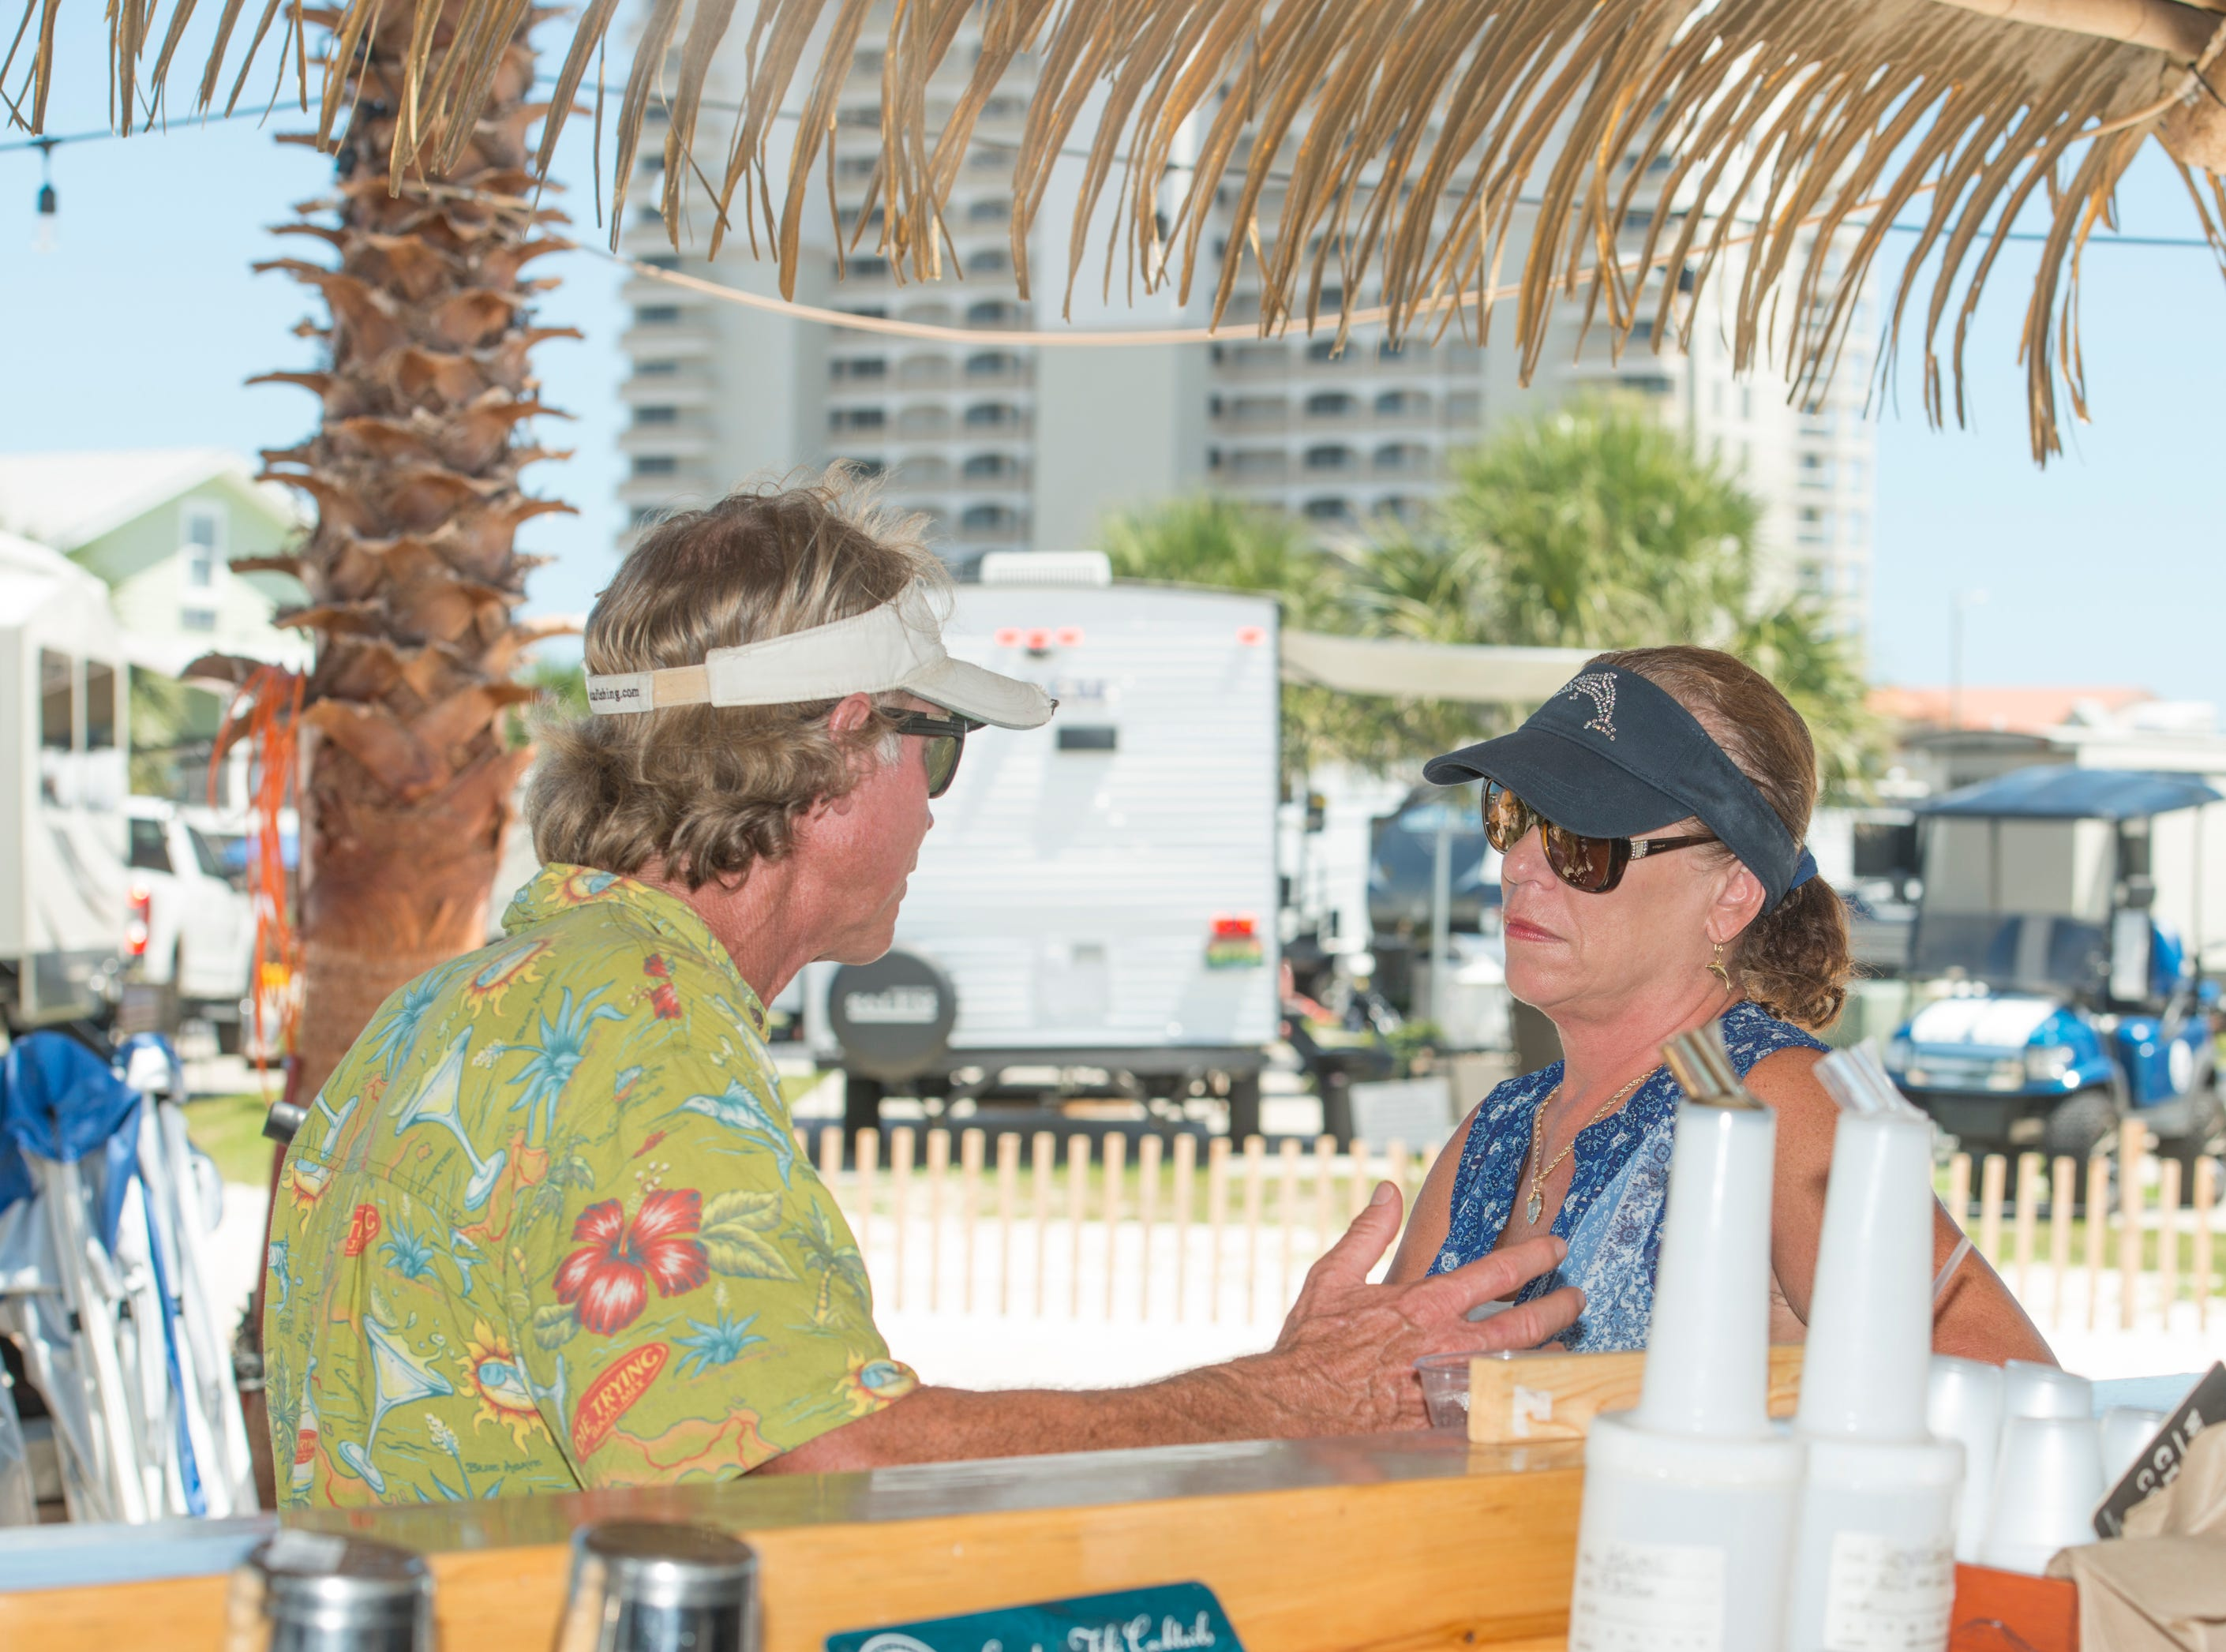 Pensacola residents Steve Moncreiff, left, and Cheryl Cooper chat while sitting at the Pensacola Beach RV Resort's Tiki Bar in Pensacola on Tuesday, August 7, 2018.